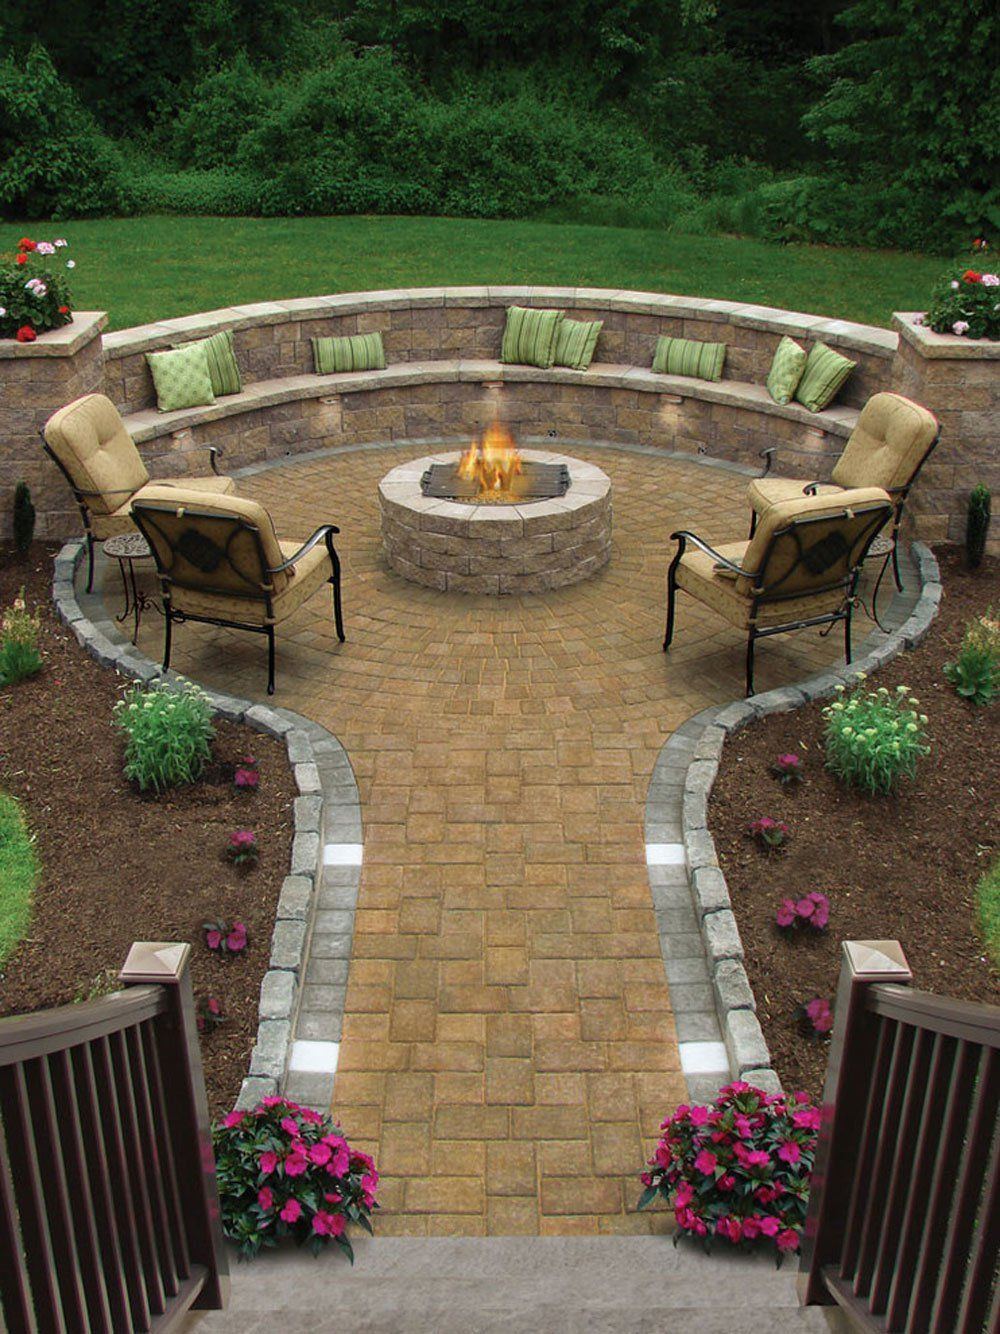 17 Of The Most Amazing Seating Area Around The Fire Pit Ever inside size 1000 X 1334